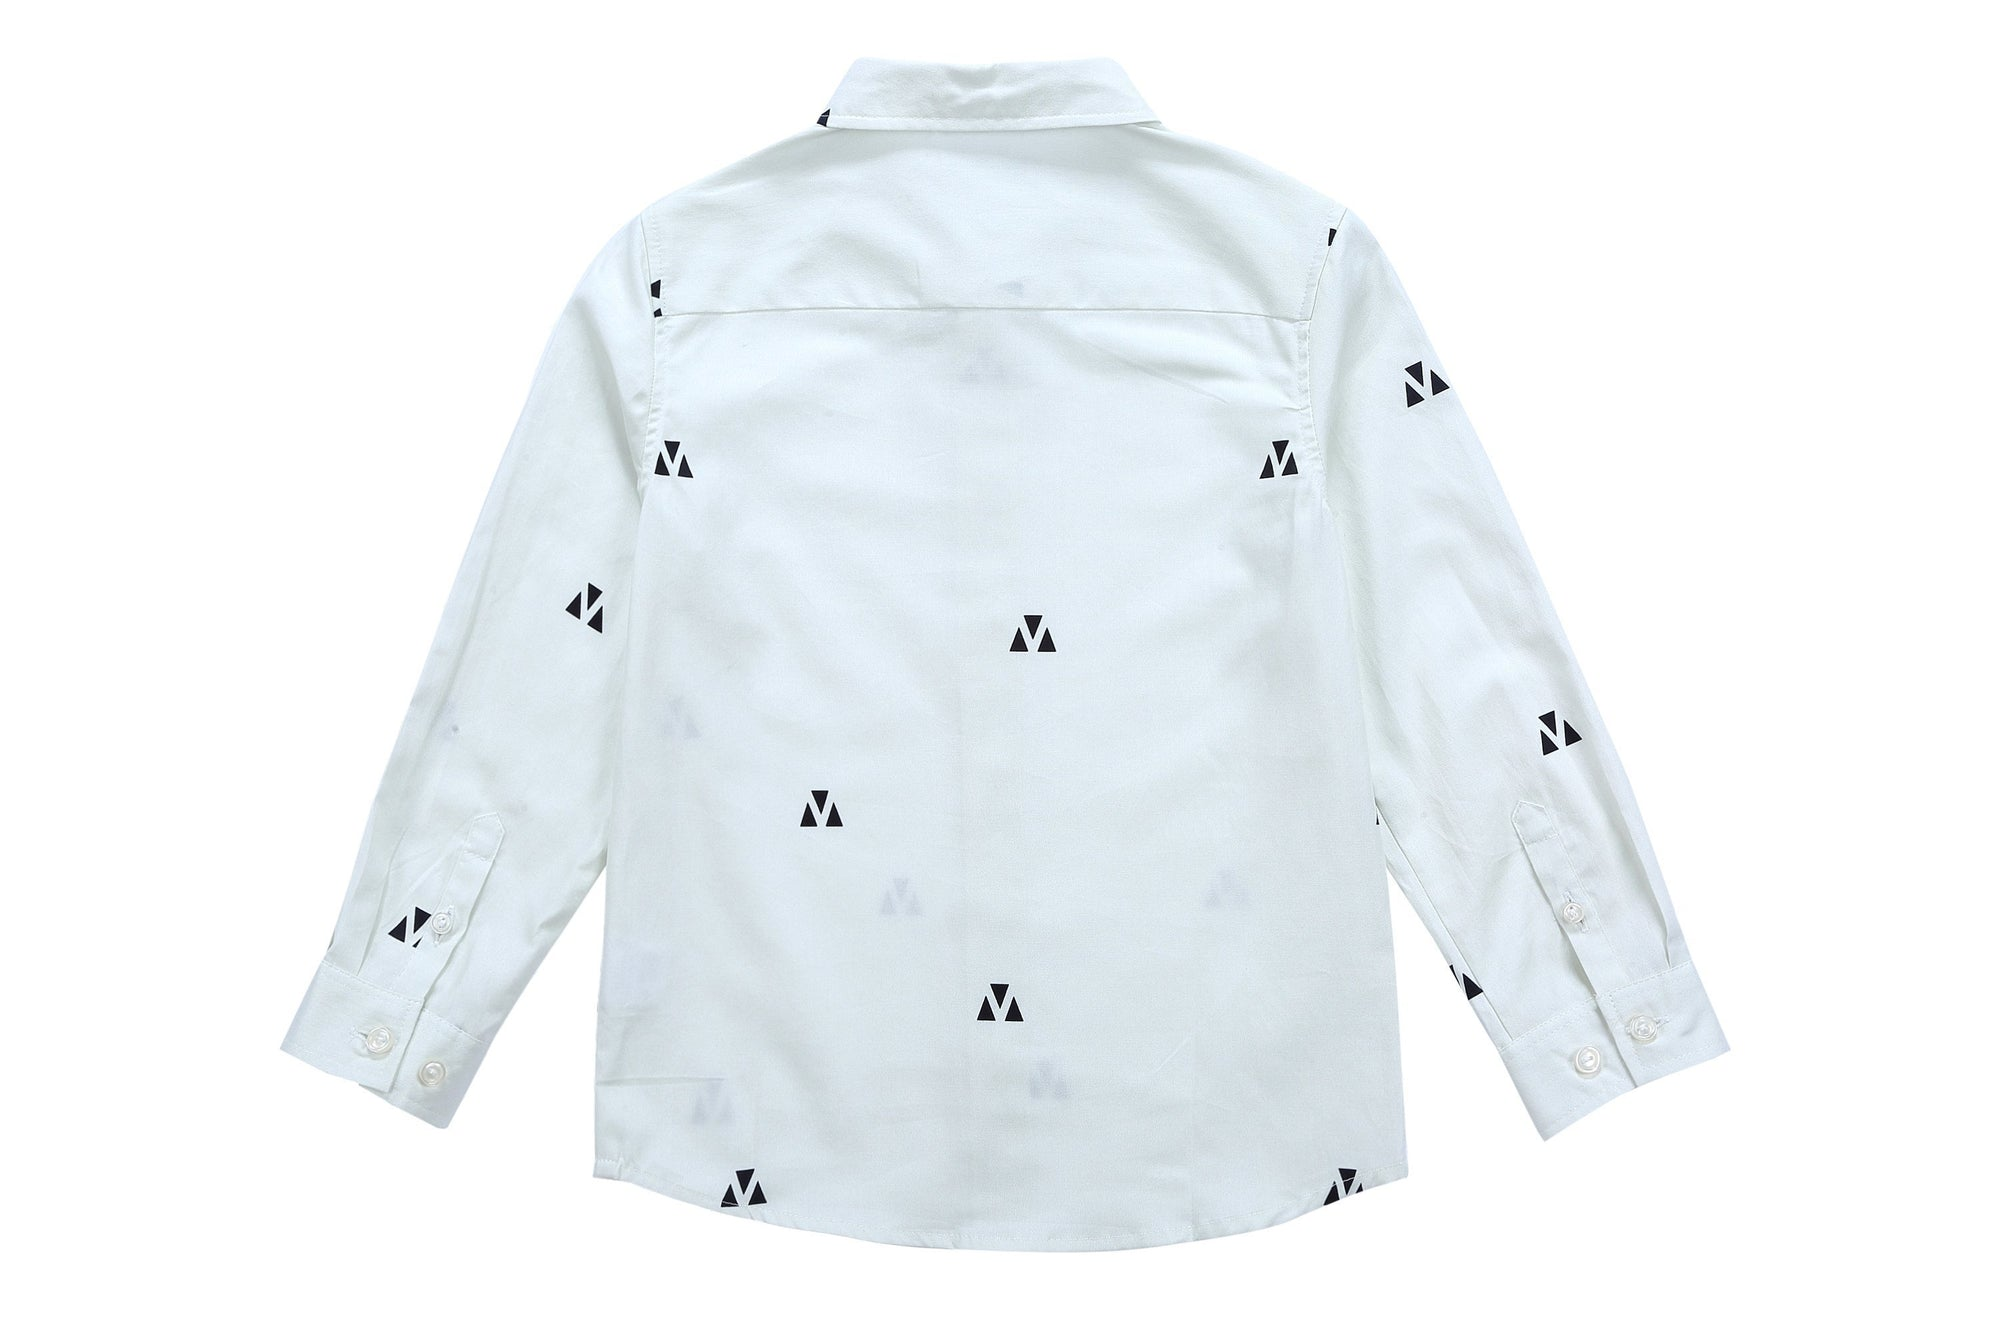 e4d580019 Petit Clair Boys Triangle Print Collar Shirt. Petit Clair Boys Triangle  Print Collar Shirt